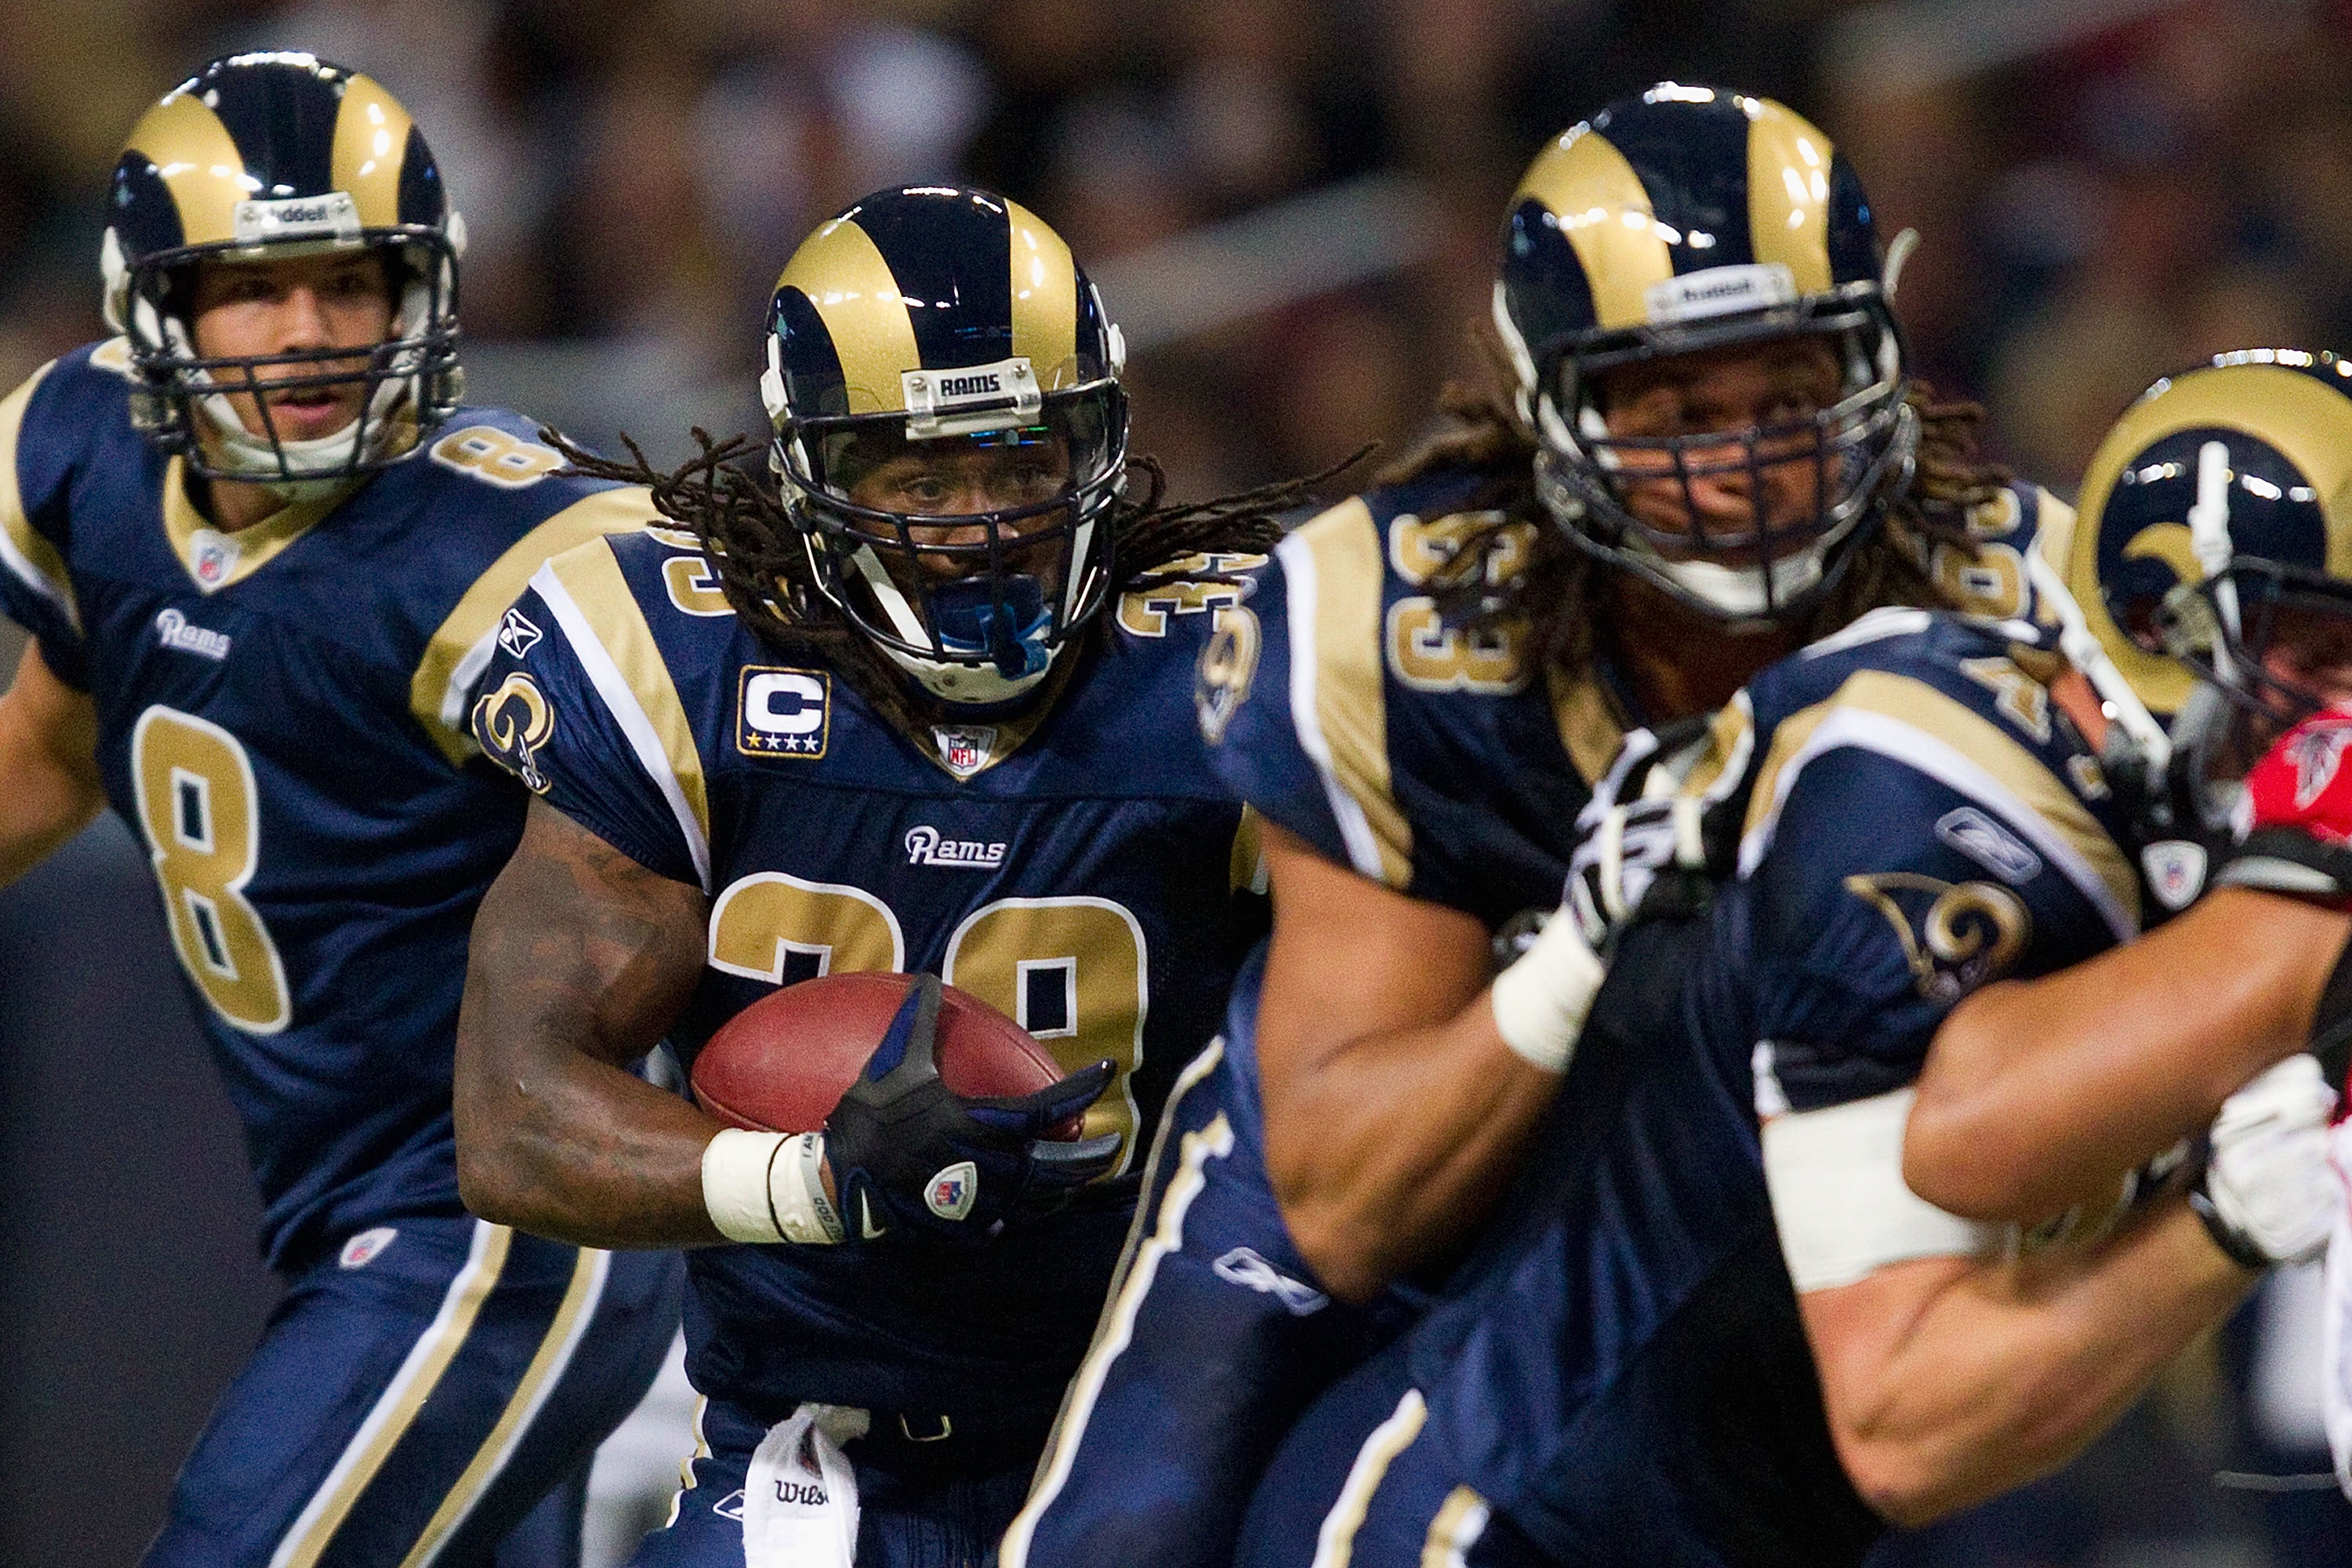 ST. LOUIS - NOVEMBER 21: Steven Jackson #39 of the St. Louis Rams rushes against the Atlanta Falcons at the Edward Jones Dome on November 21, 2010 in St. Louis, Missouri.  The Falcons beat the Rams 34-17.  (Photo by Dilip Vishwanat/Getty Images)